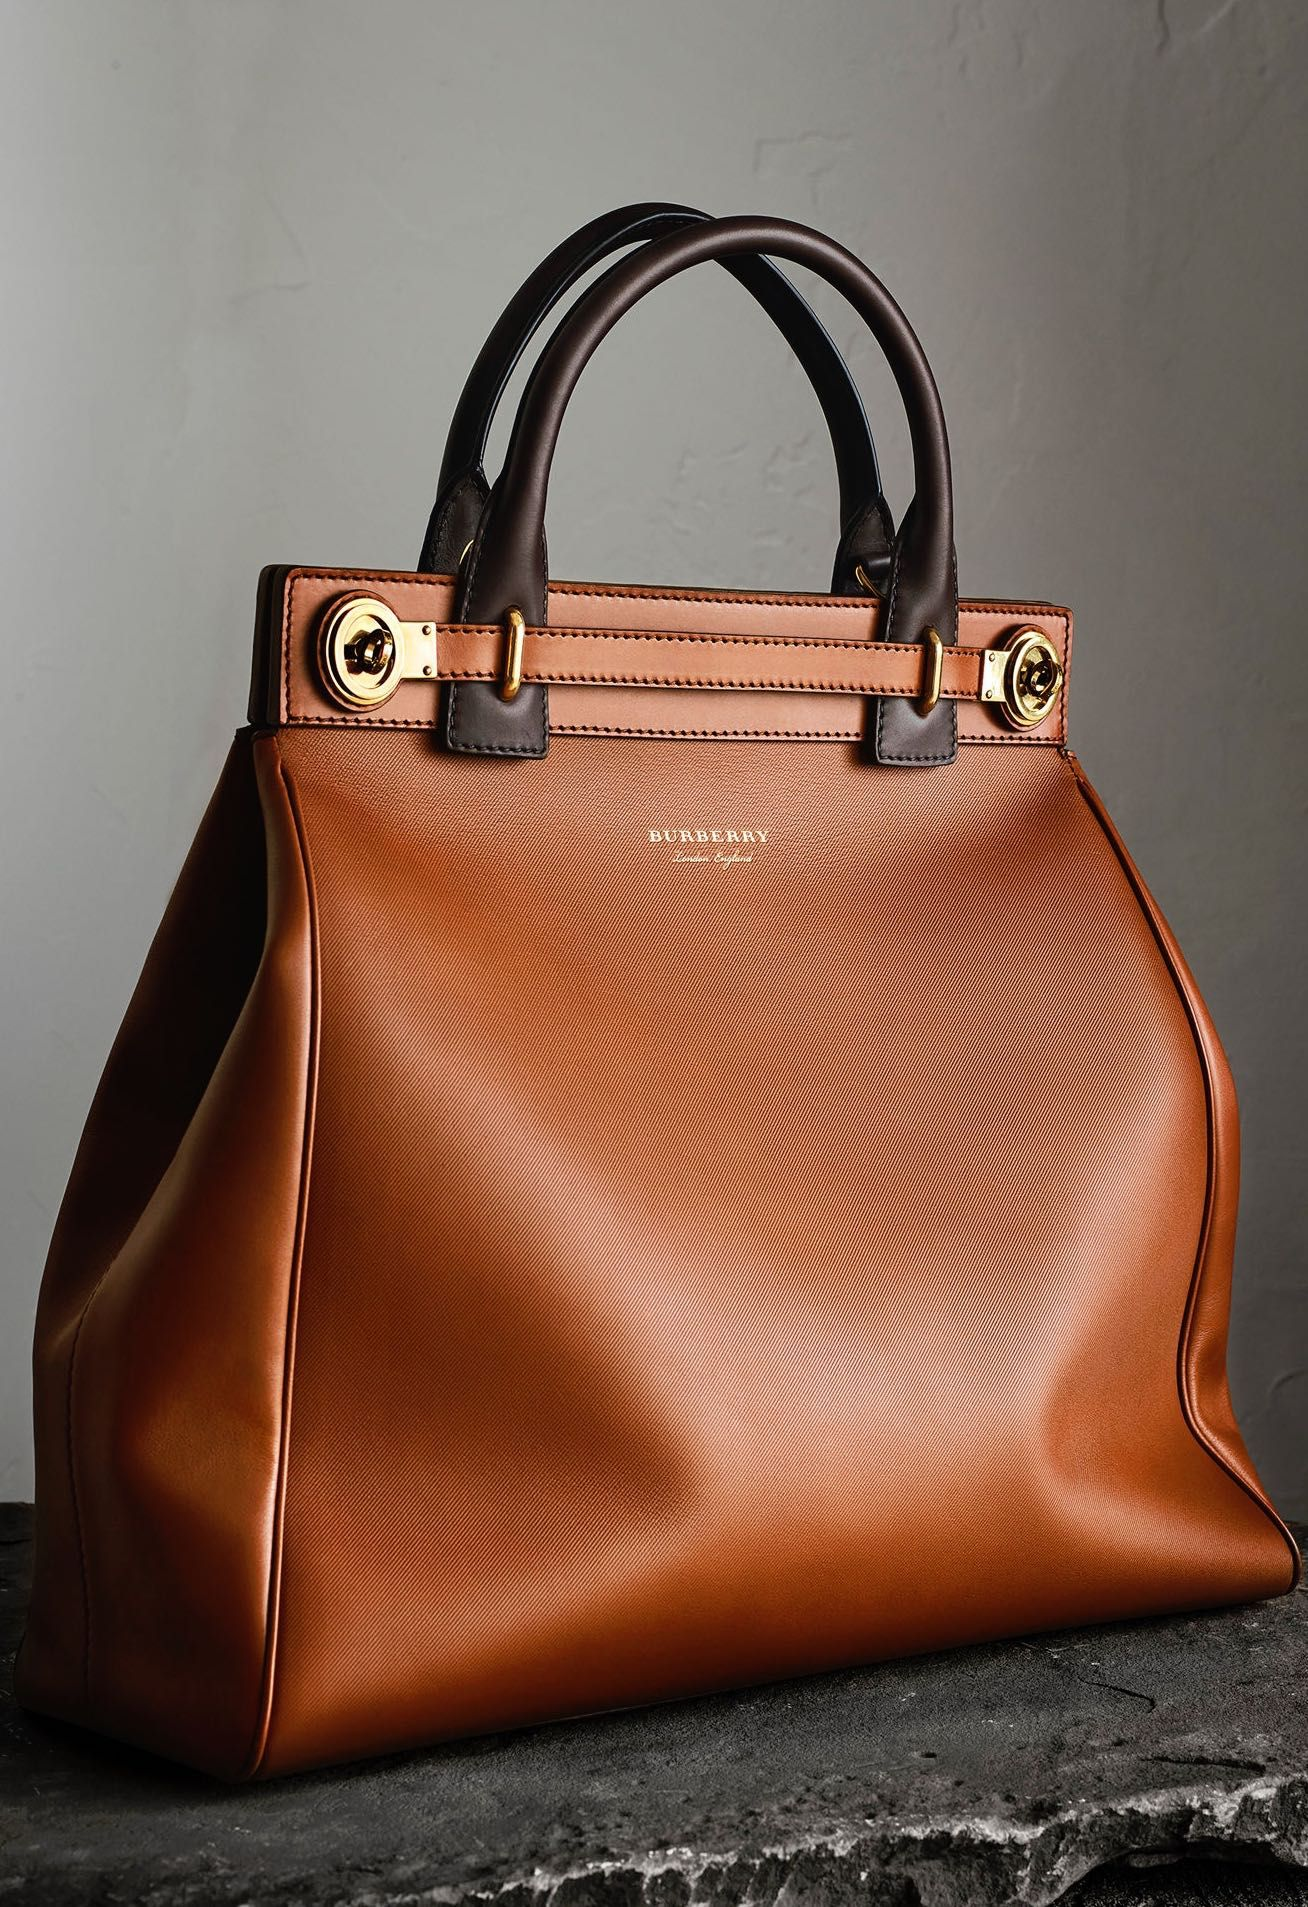 f4e38d82cd31 The New DK88 Bag from Burberry